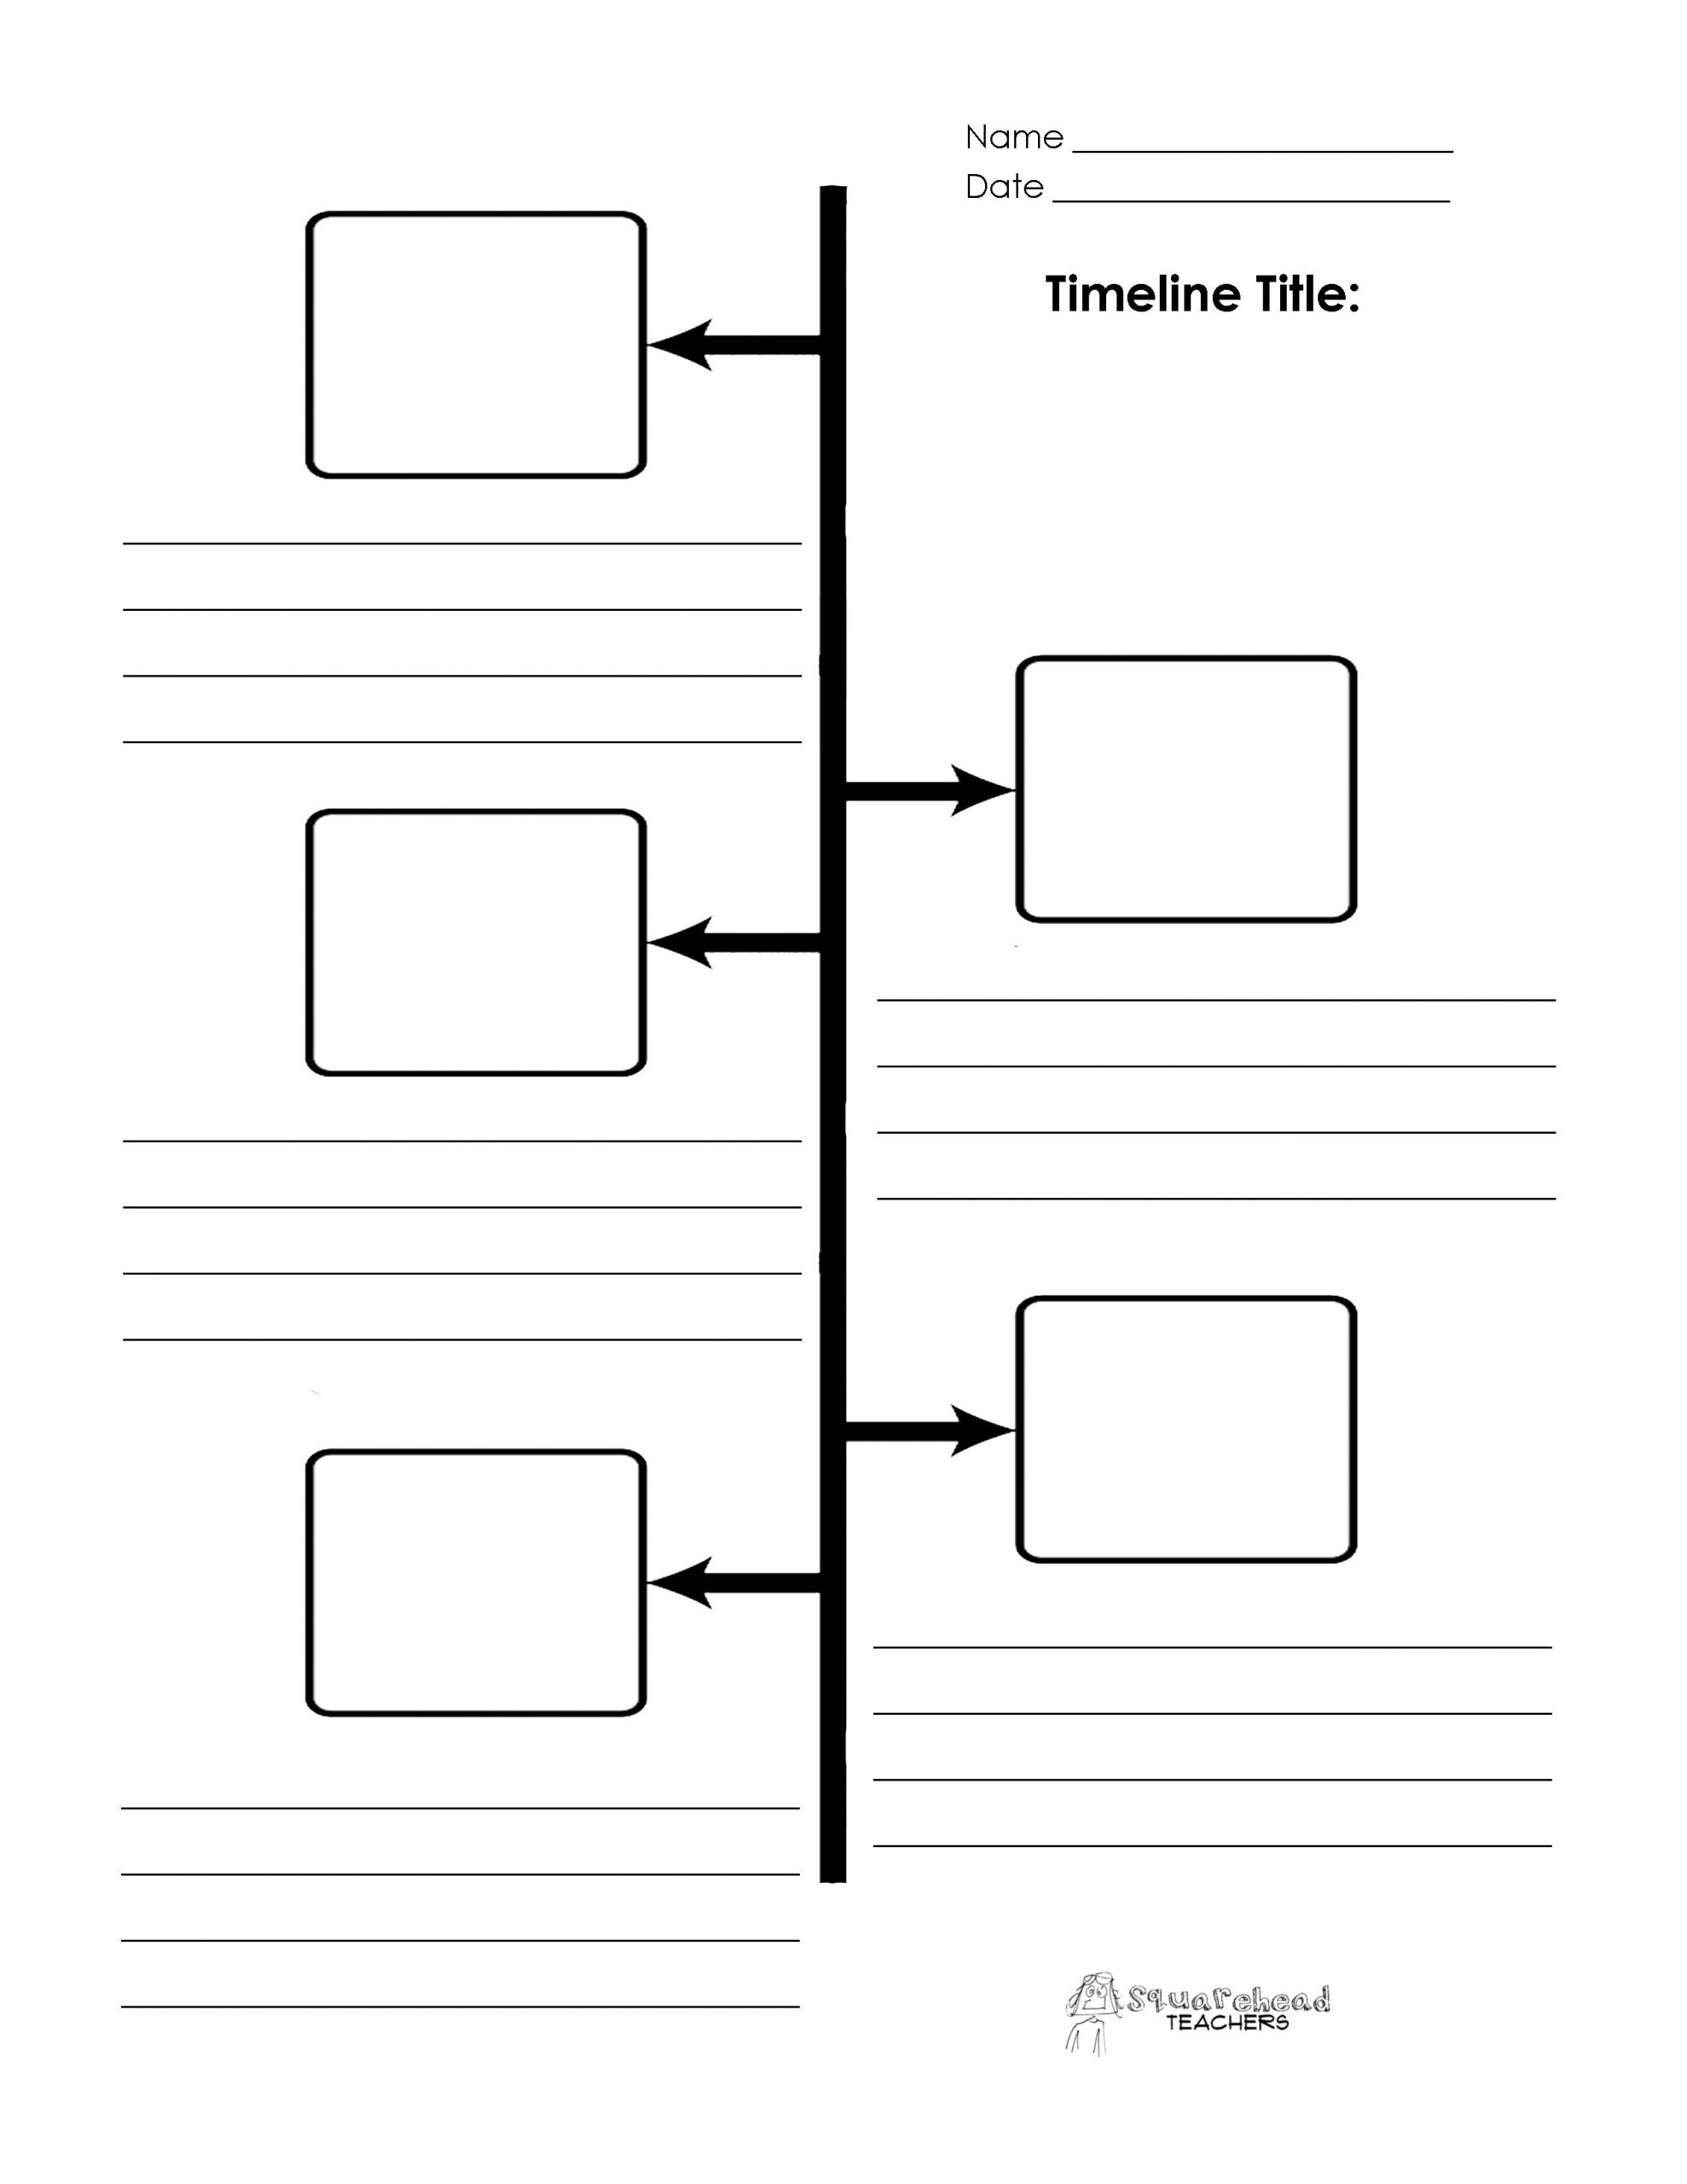 Timeline Worksheets for Middle School Blank Timeline Printables